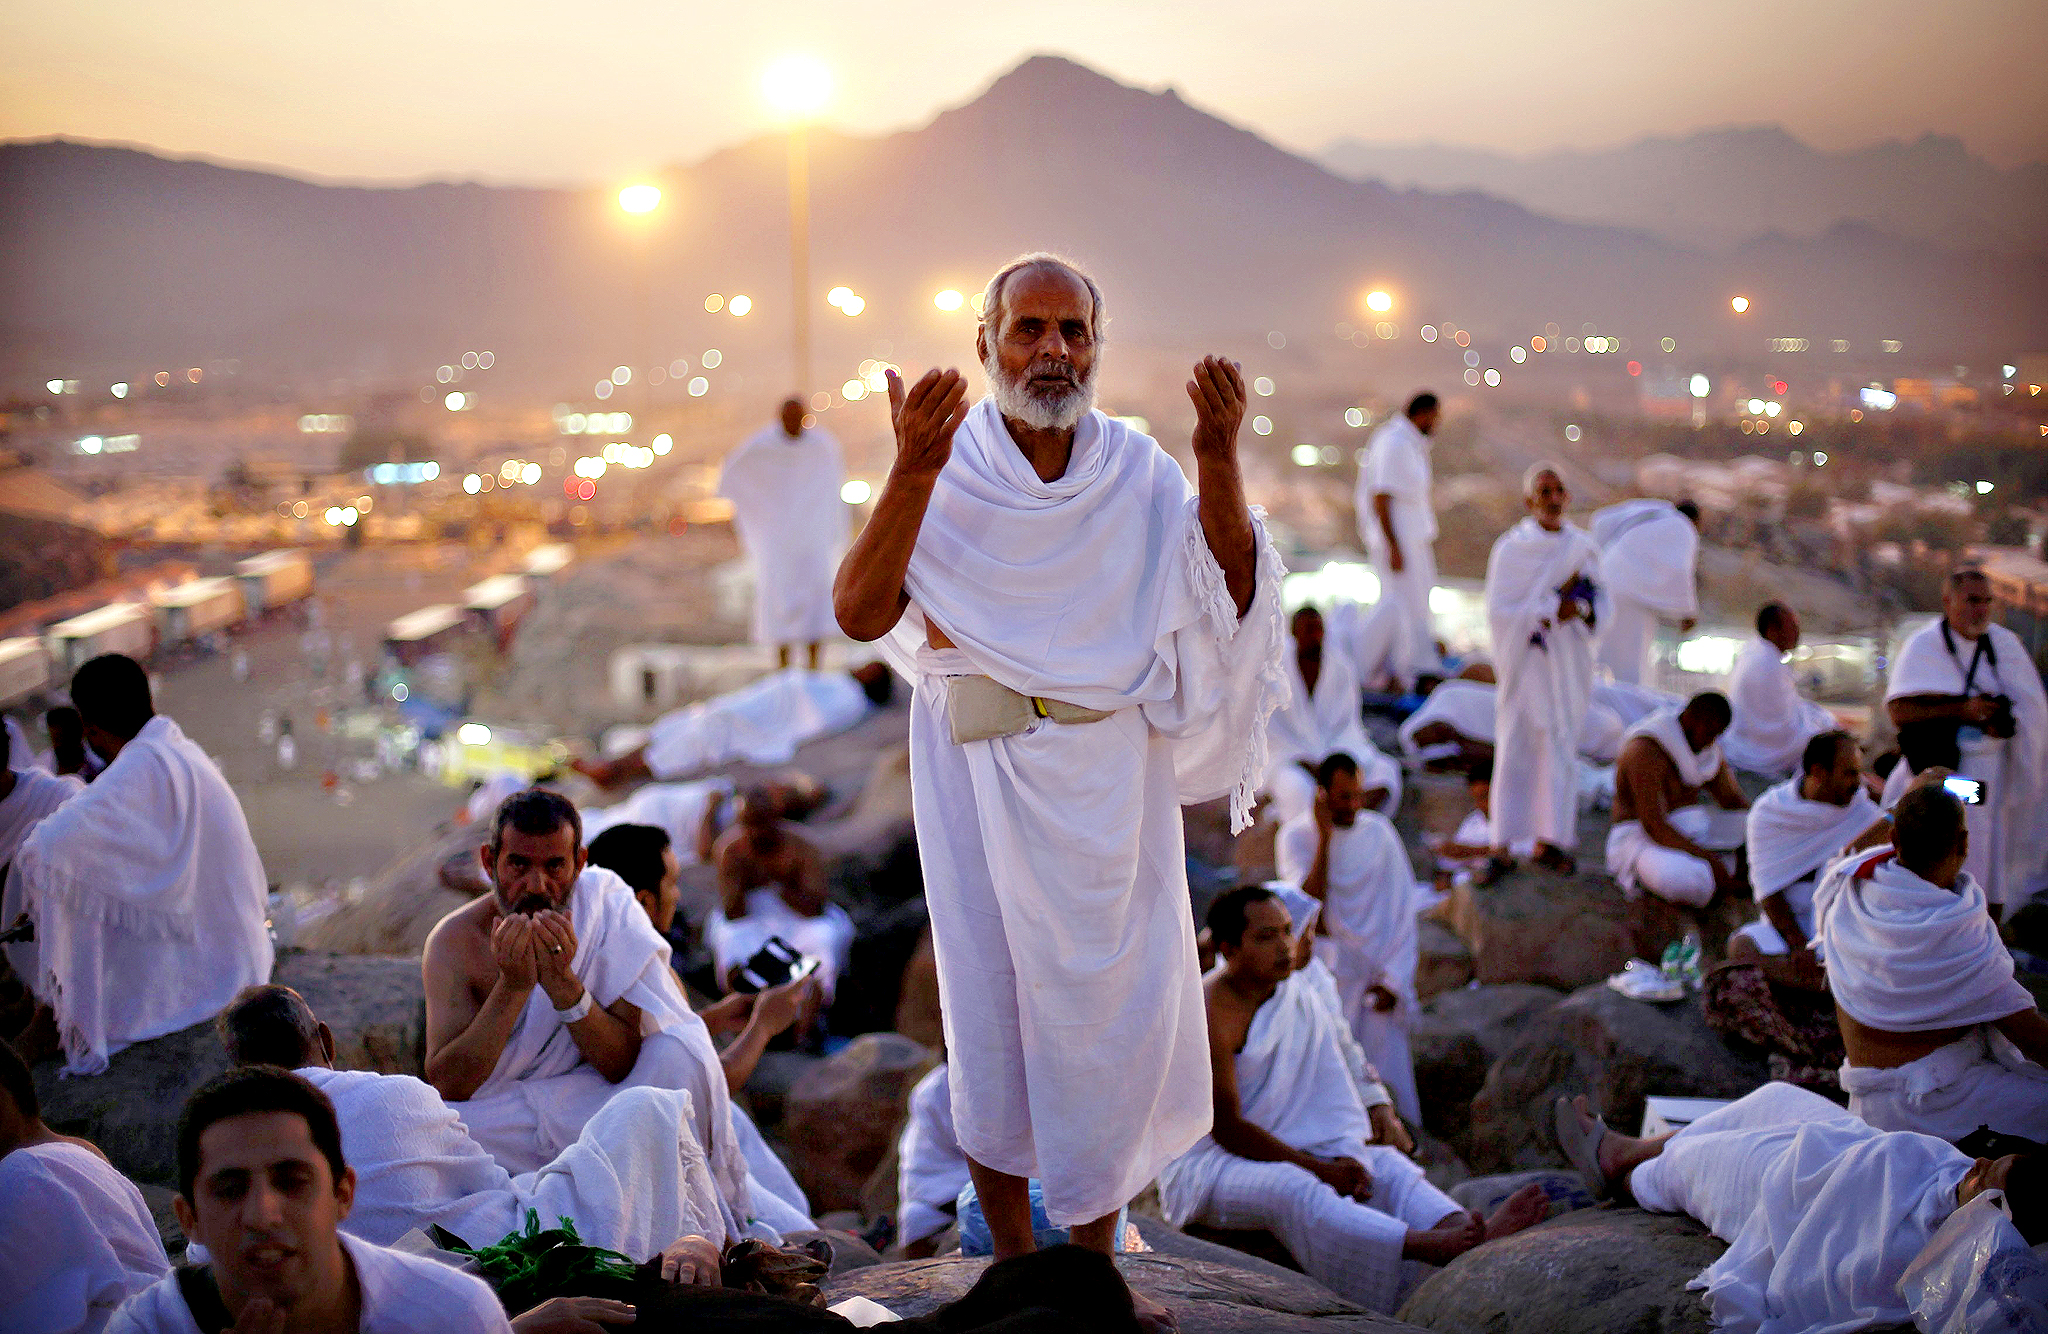 Millions of Muslims converge yearly to Saudi Arabia to perform the annual Hajj, one of the world's biggest displays of mass religious peaceful devotion. Hundreds of thousands of pilgrims have started to leave the Kingdom after peacefully performing the journey rituals.